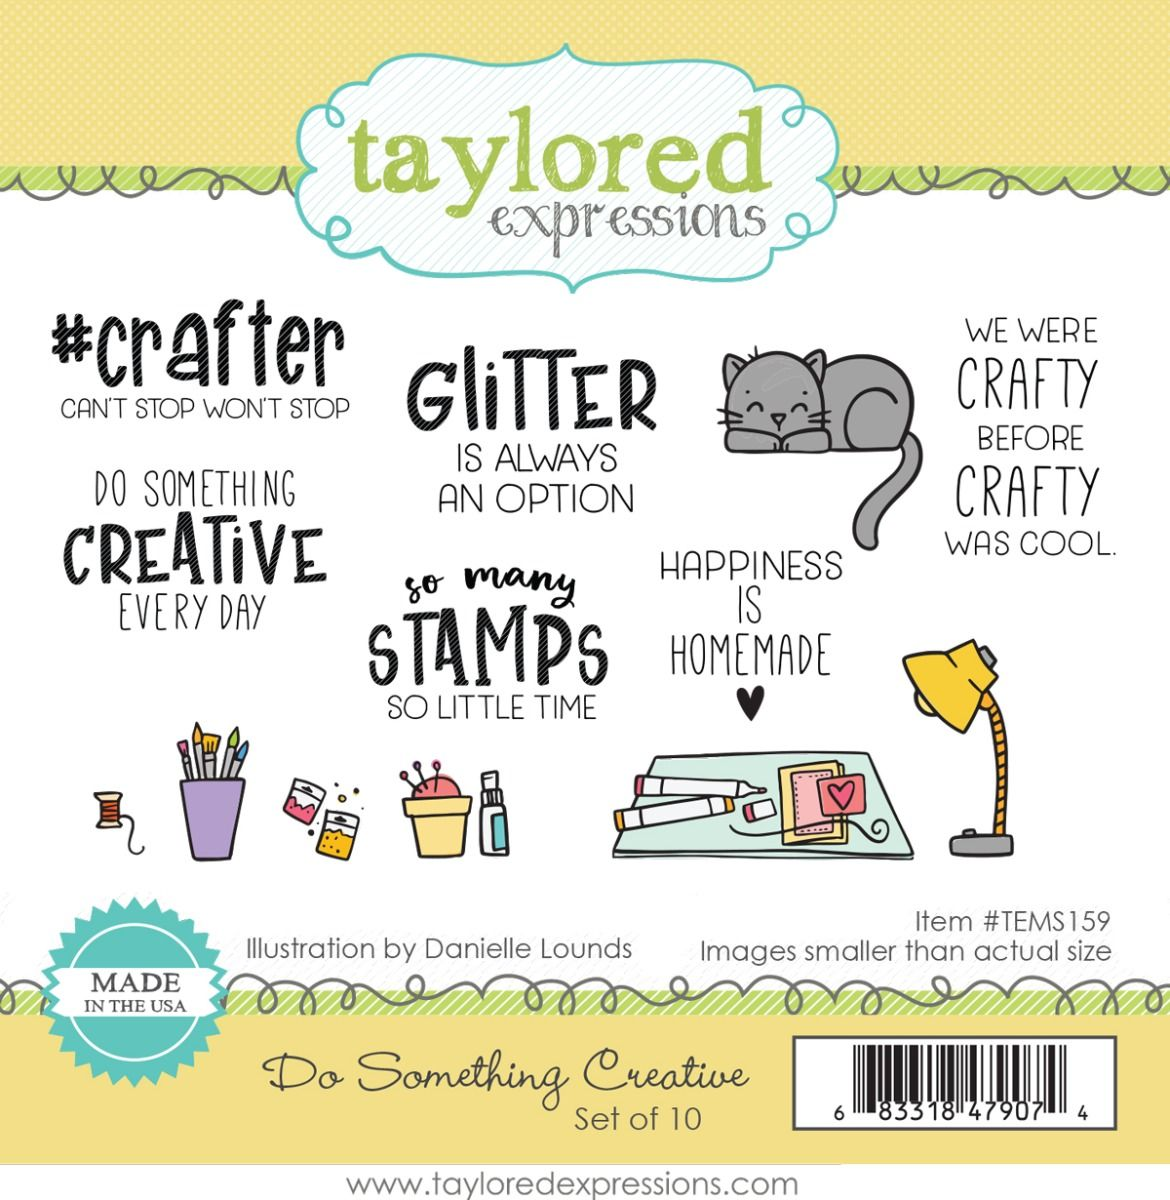 Taylored Expression - Do Something Creative